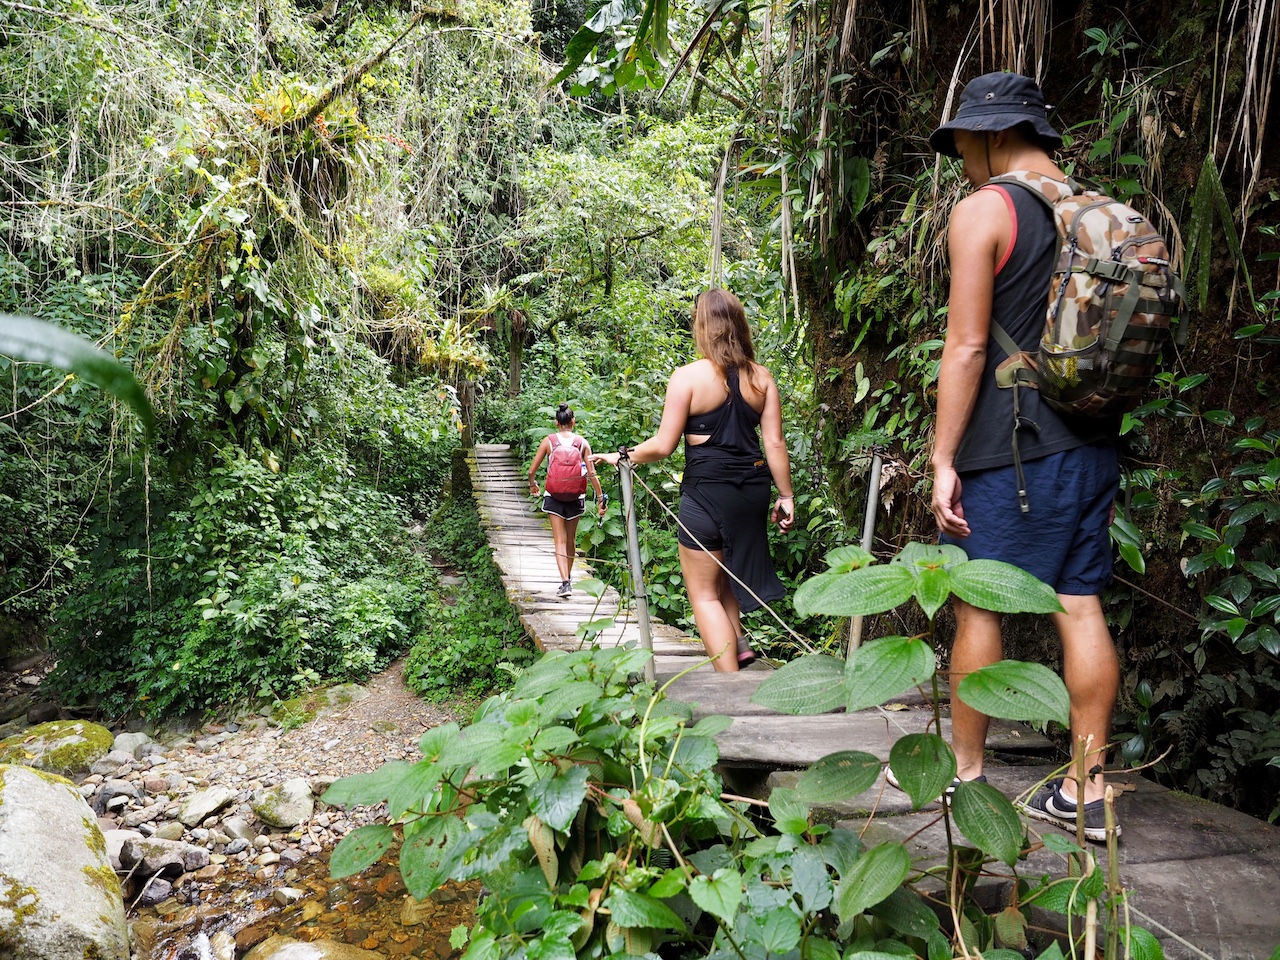 You walk through some amazing jungle and across deteriorating suspension bridges over gently flowing rivers.